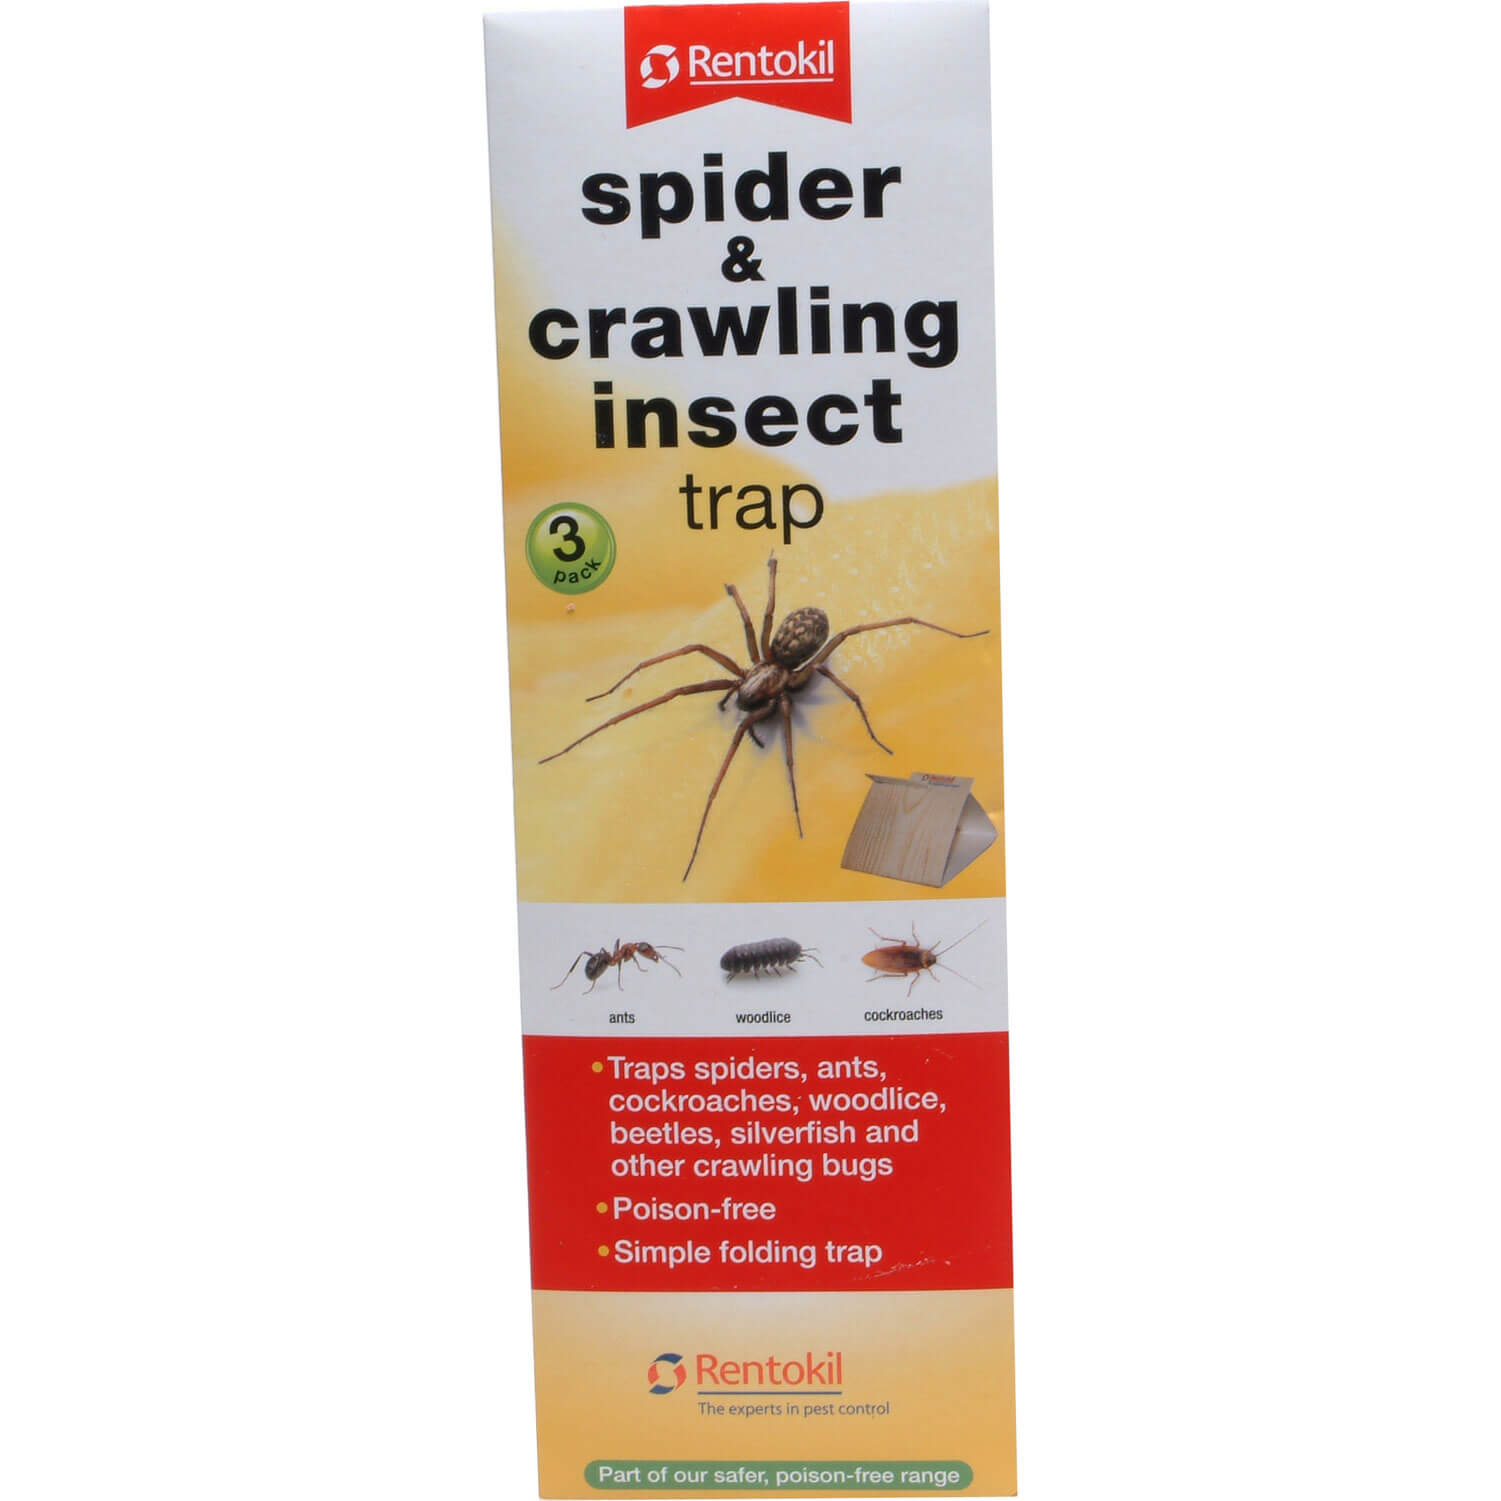 Image of Rentokil Spider and Crawling Insect Trap Pack of 3